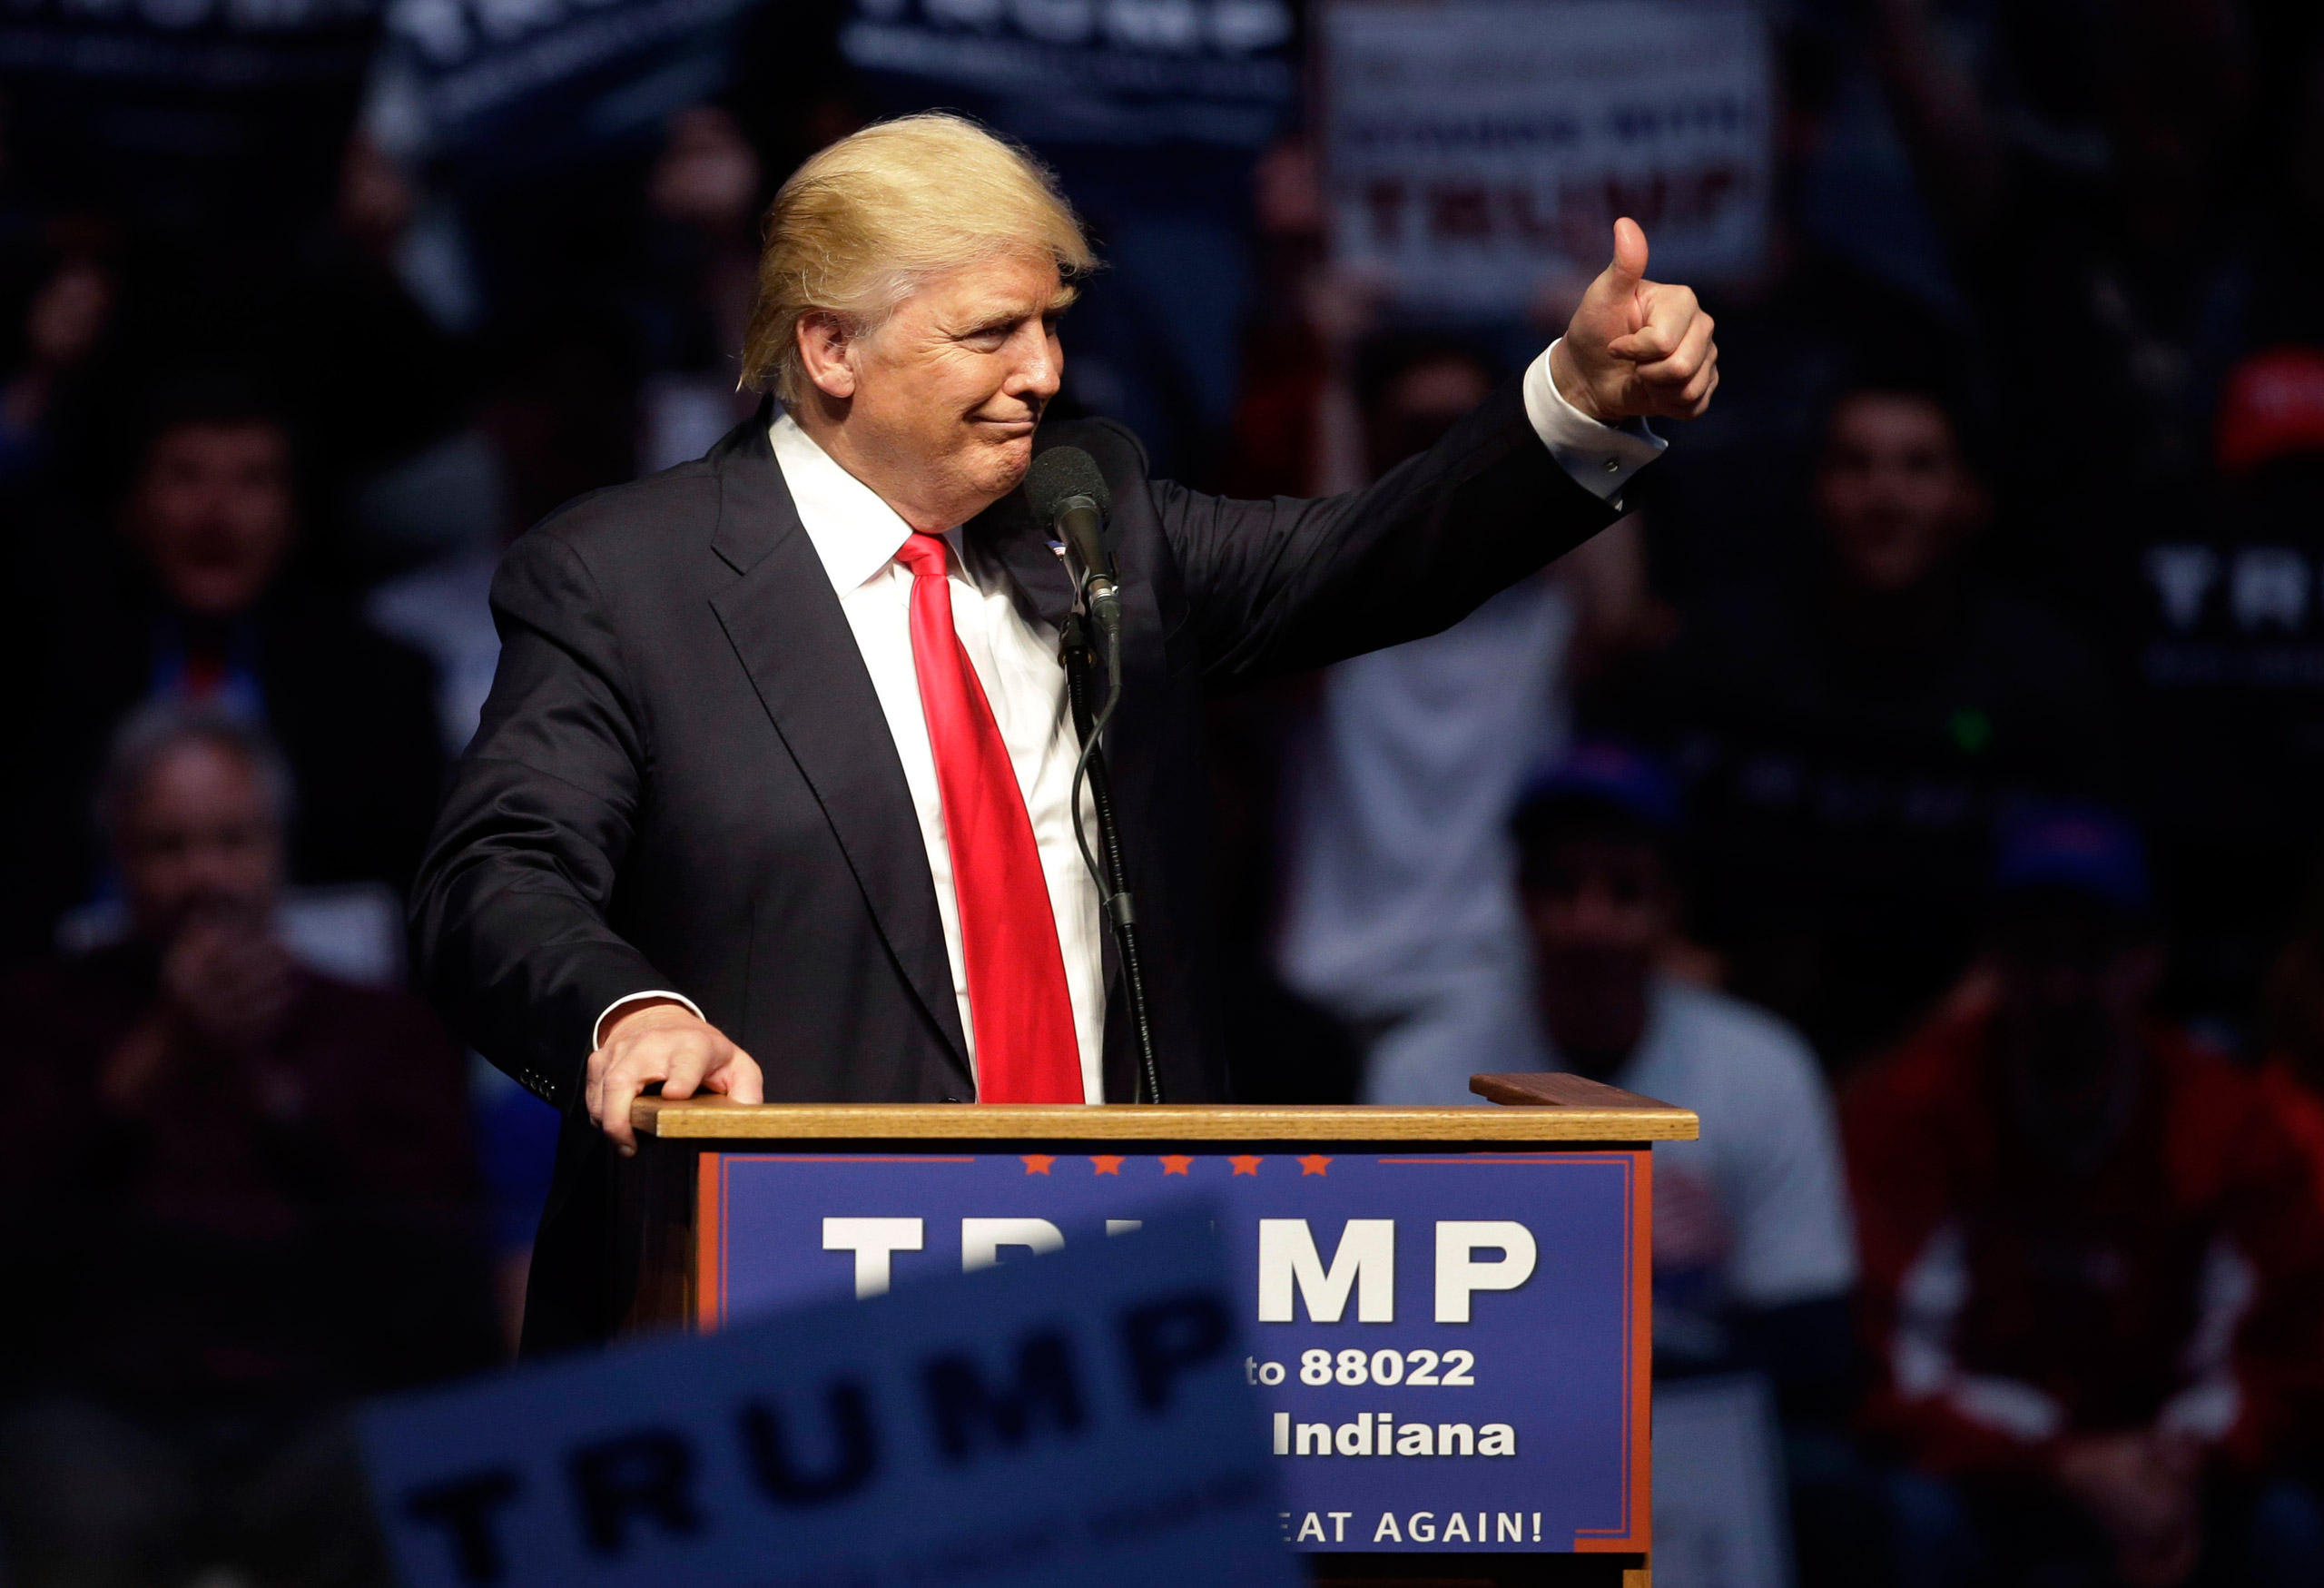 Republican presidential candidate Donald Trump gestures during a campaign stop in Indianapolis on April 27, 2016.